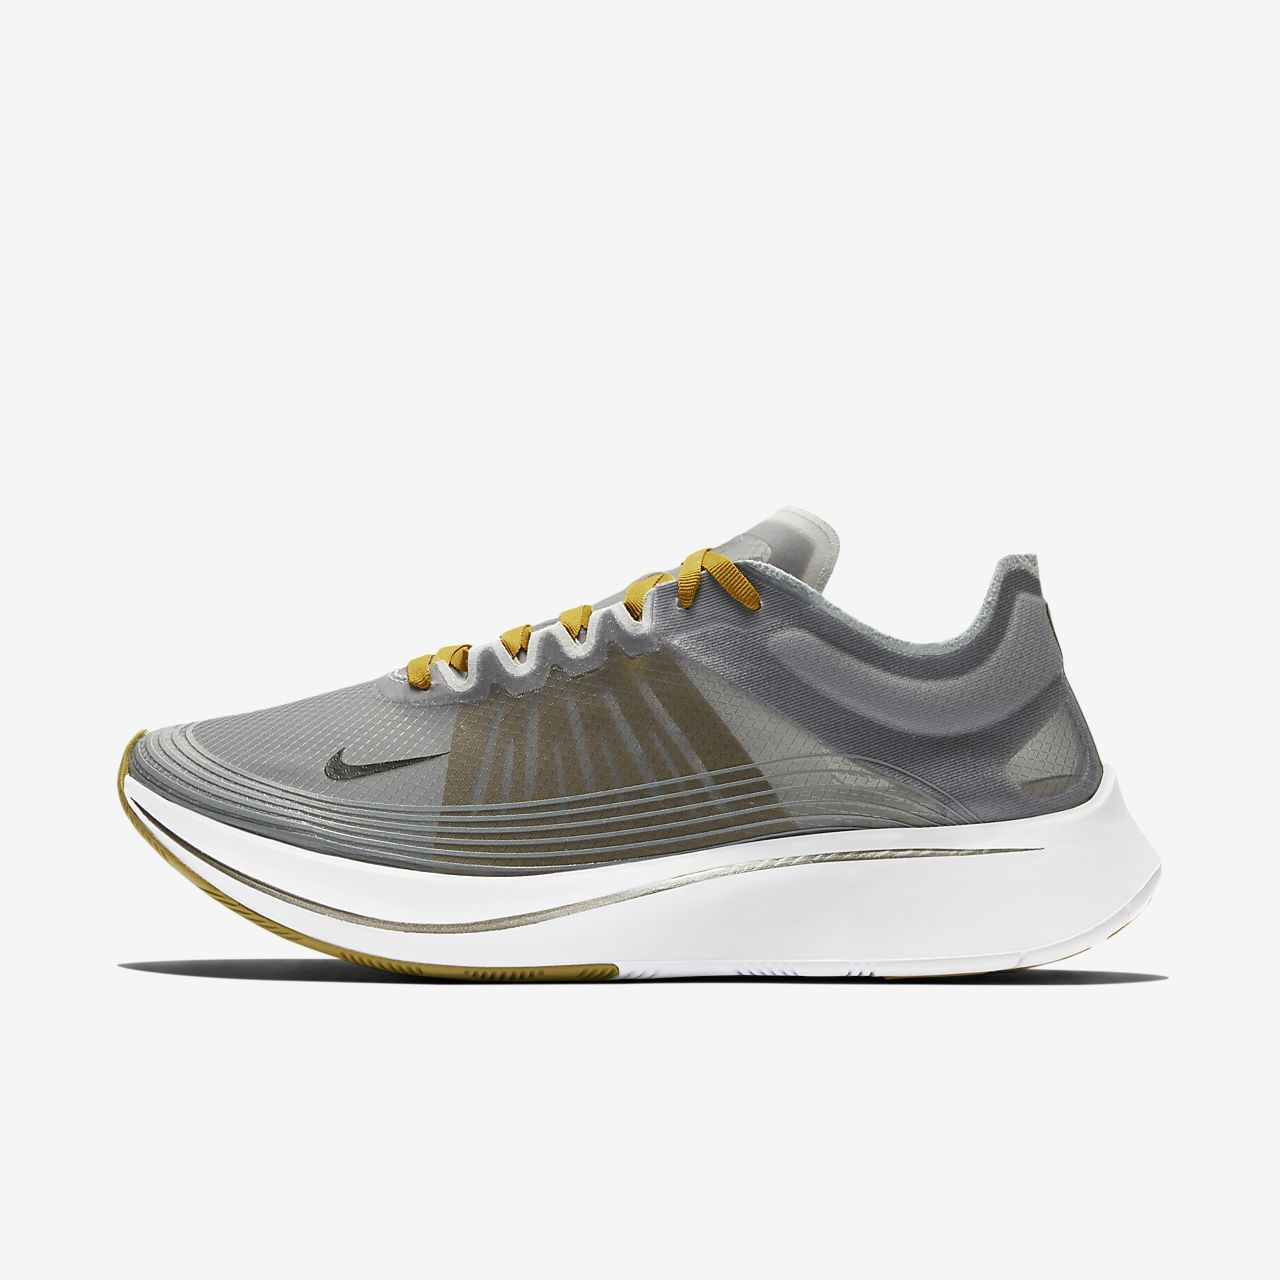 separation shoes 06d33 ed9ca ... Nike Zoom Fly SP Running Shoe